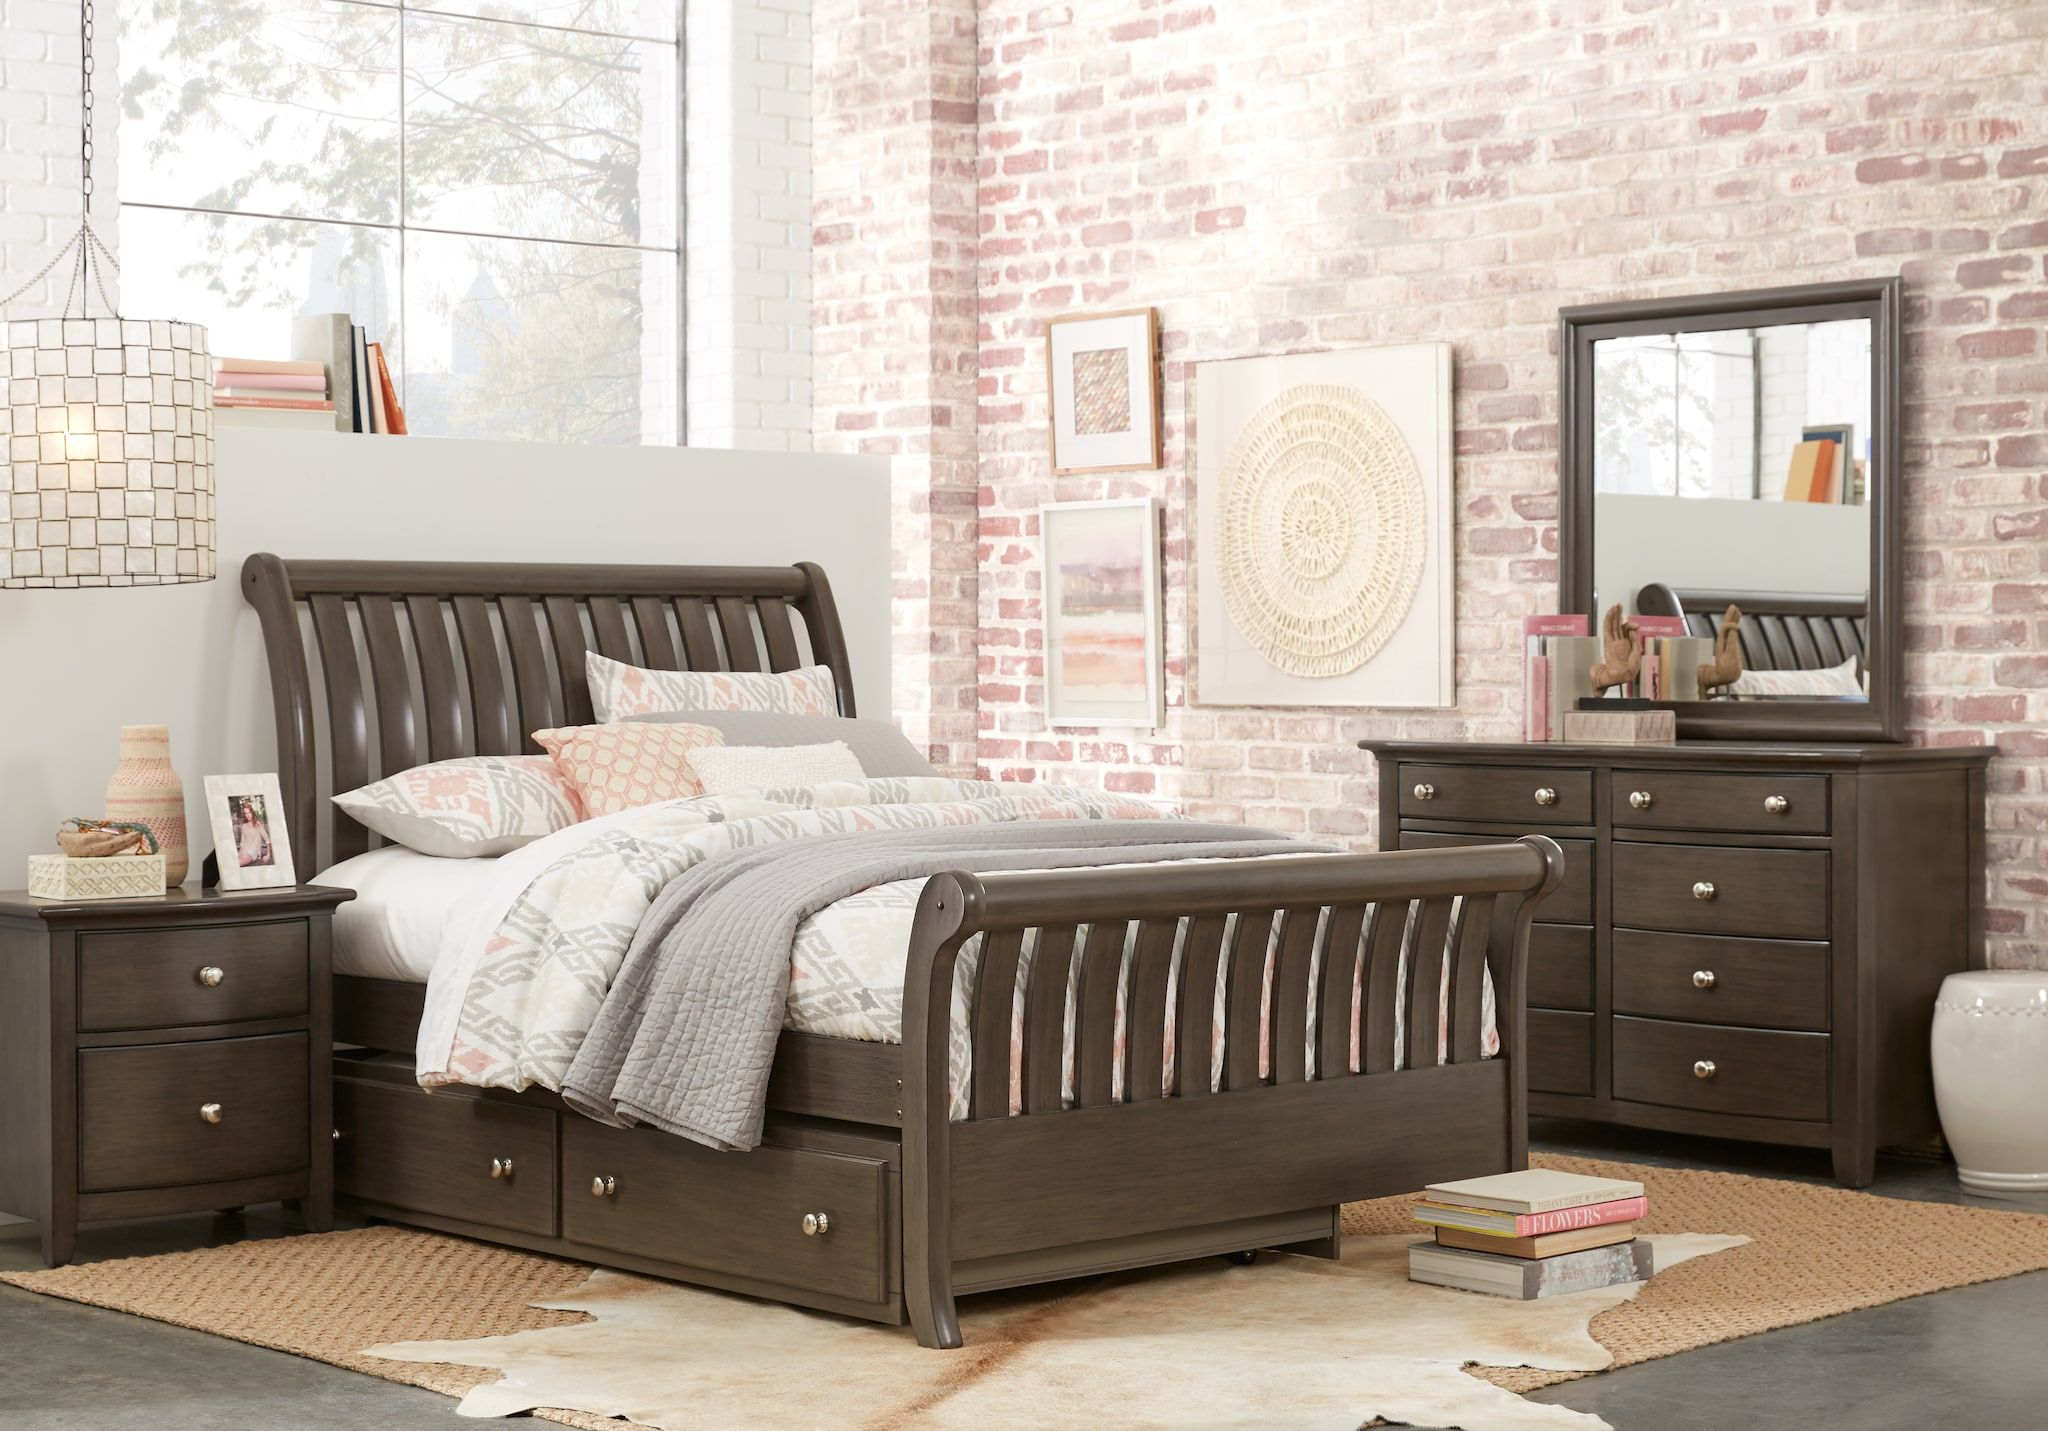 Full Size Bedroom Sets for Boys: Double Bedroom Suites ...